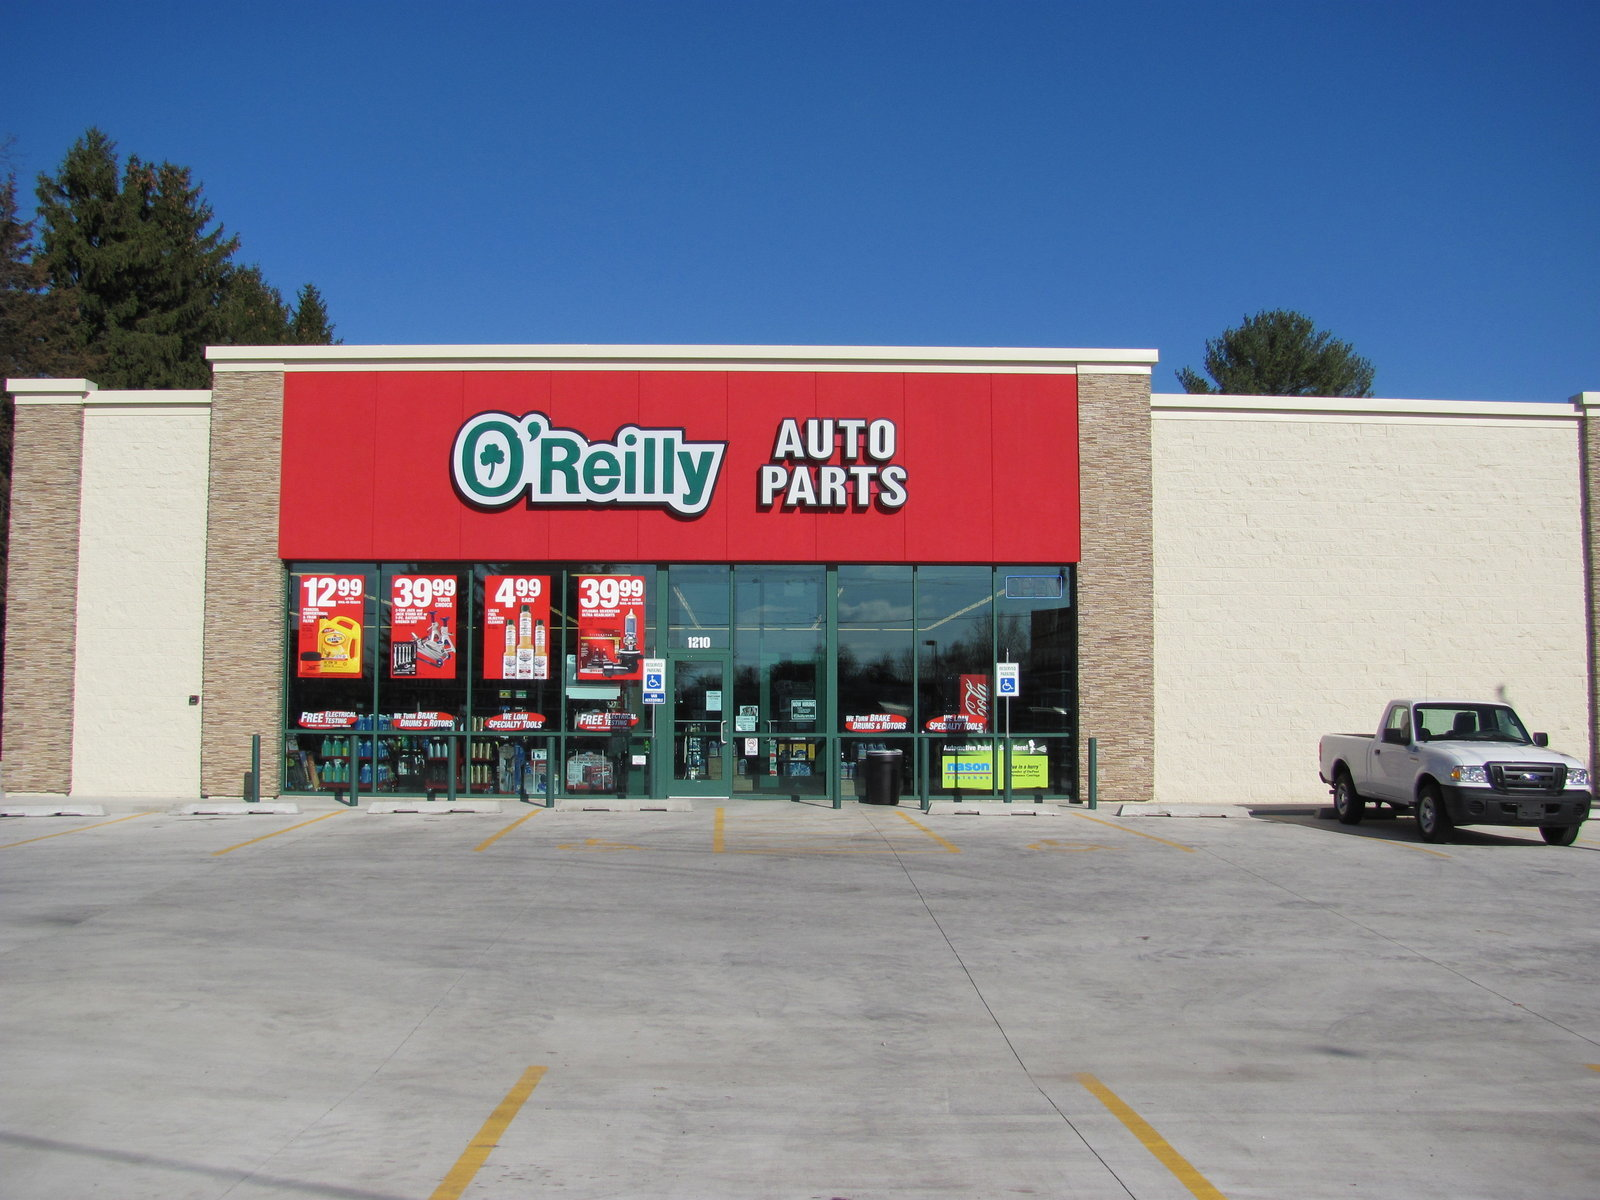 Check out a variety of auto parts, supplies, and accessories for cars, trucks, and SUVs, as well as boats, trailers, ATVs, and lawn and garden equipment. Find an O'Reilly Auto Parts store near you, learn about store services, and view our current ad, coupons, and promotions. Get free shipping on orders $+ and free in-store pickup for online orders.